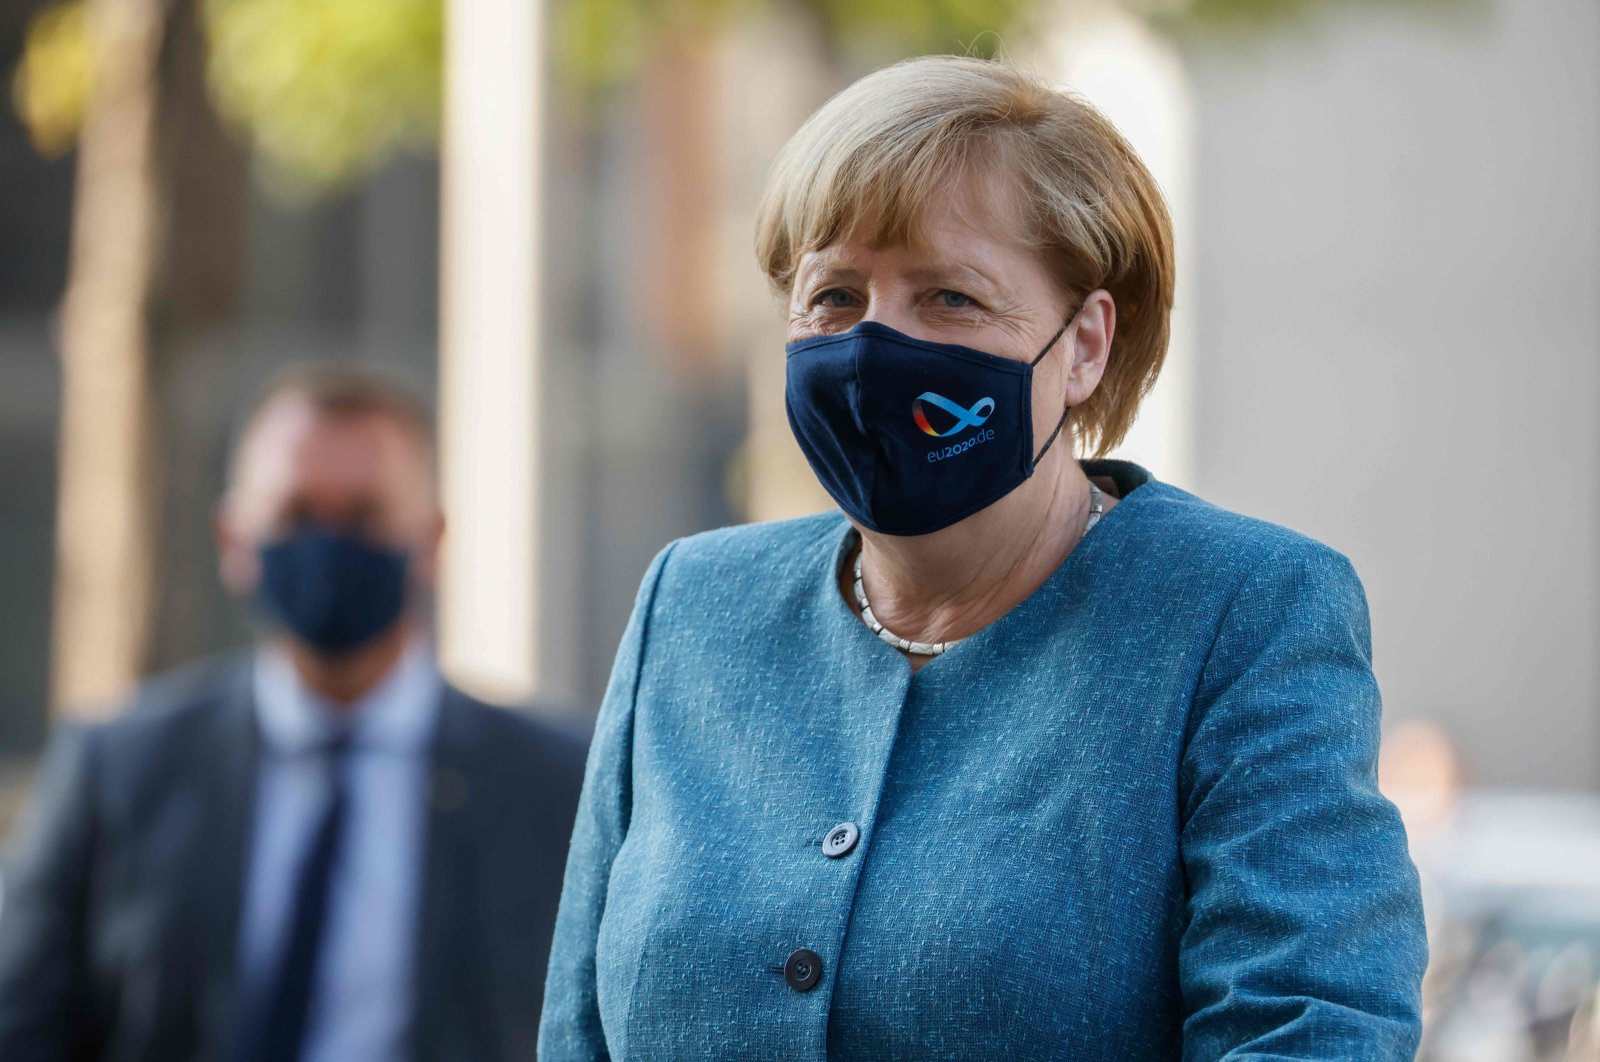 German Chancellor Angela Merkel arrives for a a meeting of the CDU/CSU parliamentary group at the Bundestag in Berlin on September 15, 2020. (AFP Photo)